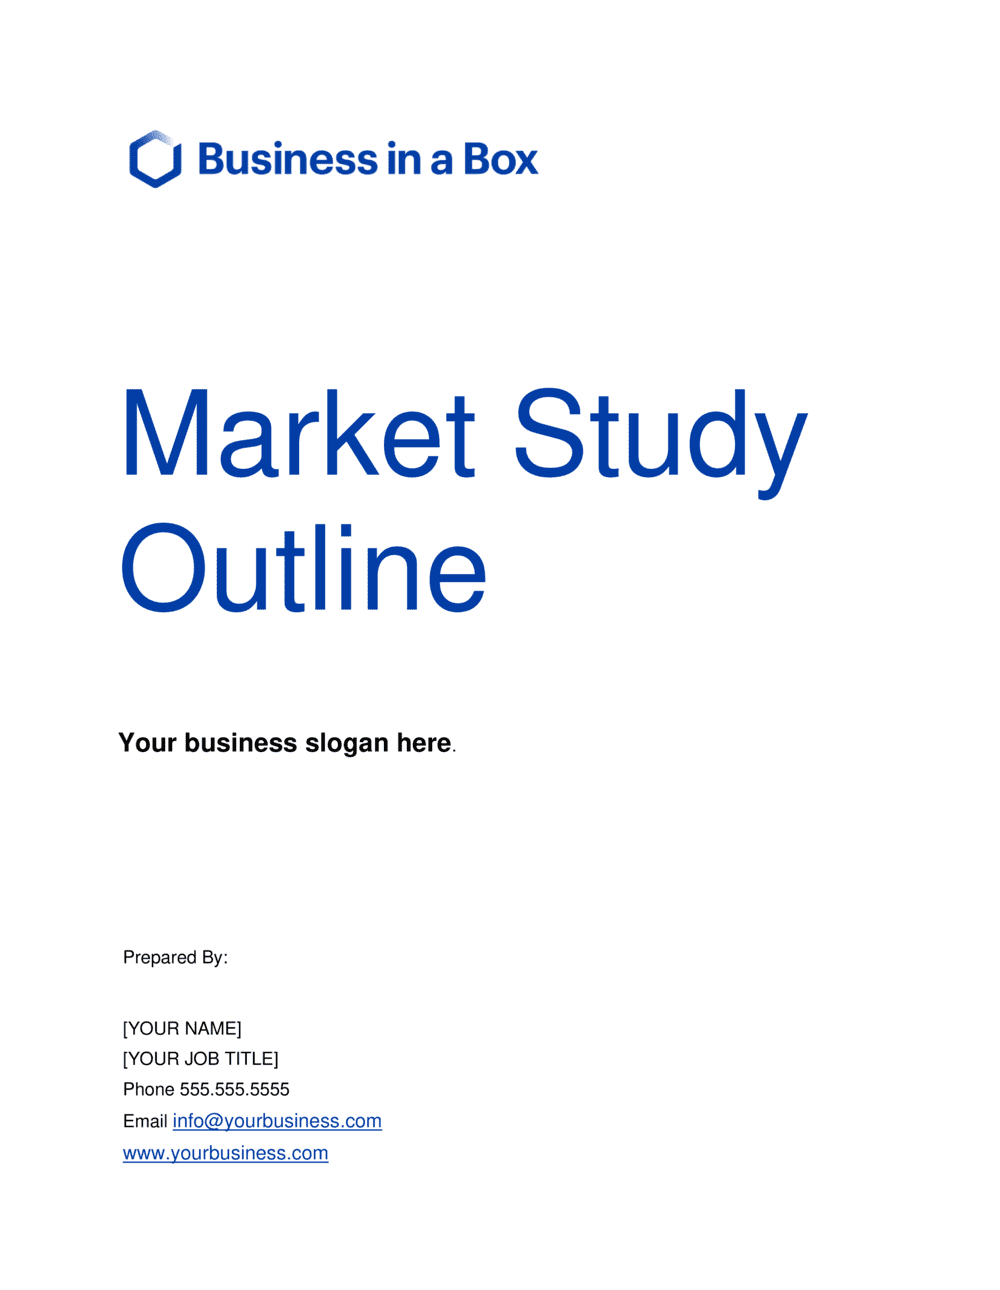 Business-in-a-Box's Market Study Outline Template